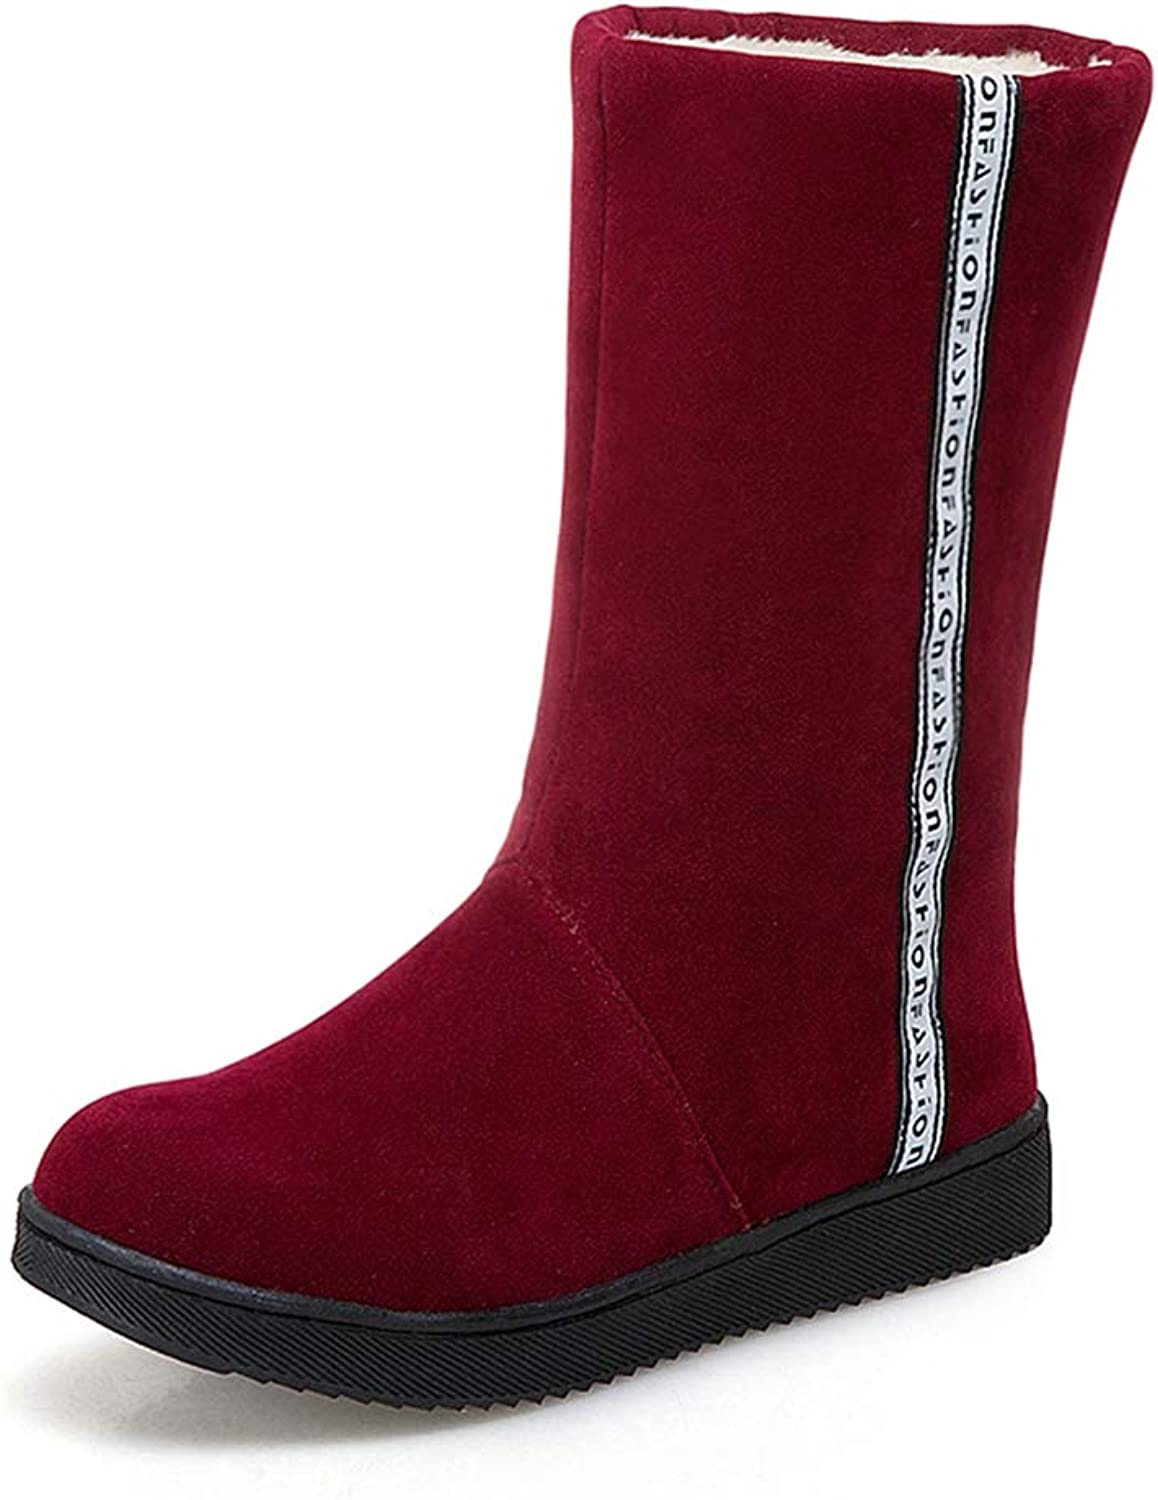 T-JULY Women's Slip On Mid Calf Boots shoes Add Fur Winter Boots Warm shoes Snow Boots Plus Size 31-41